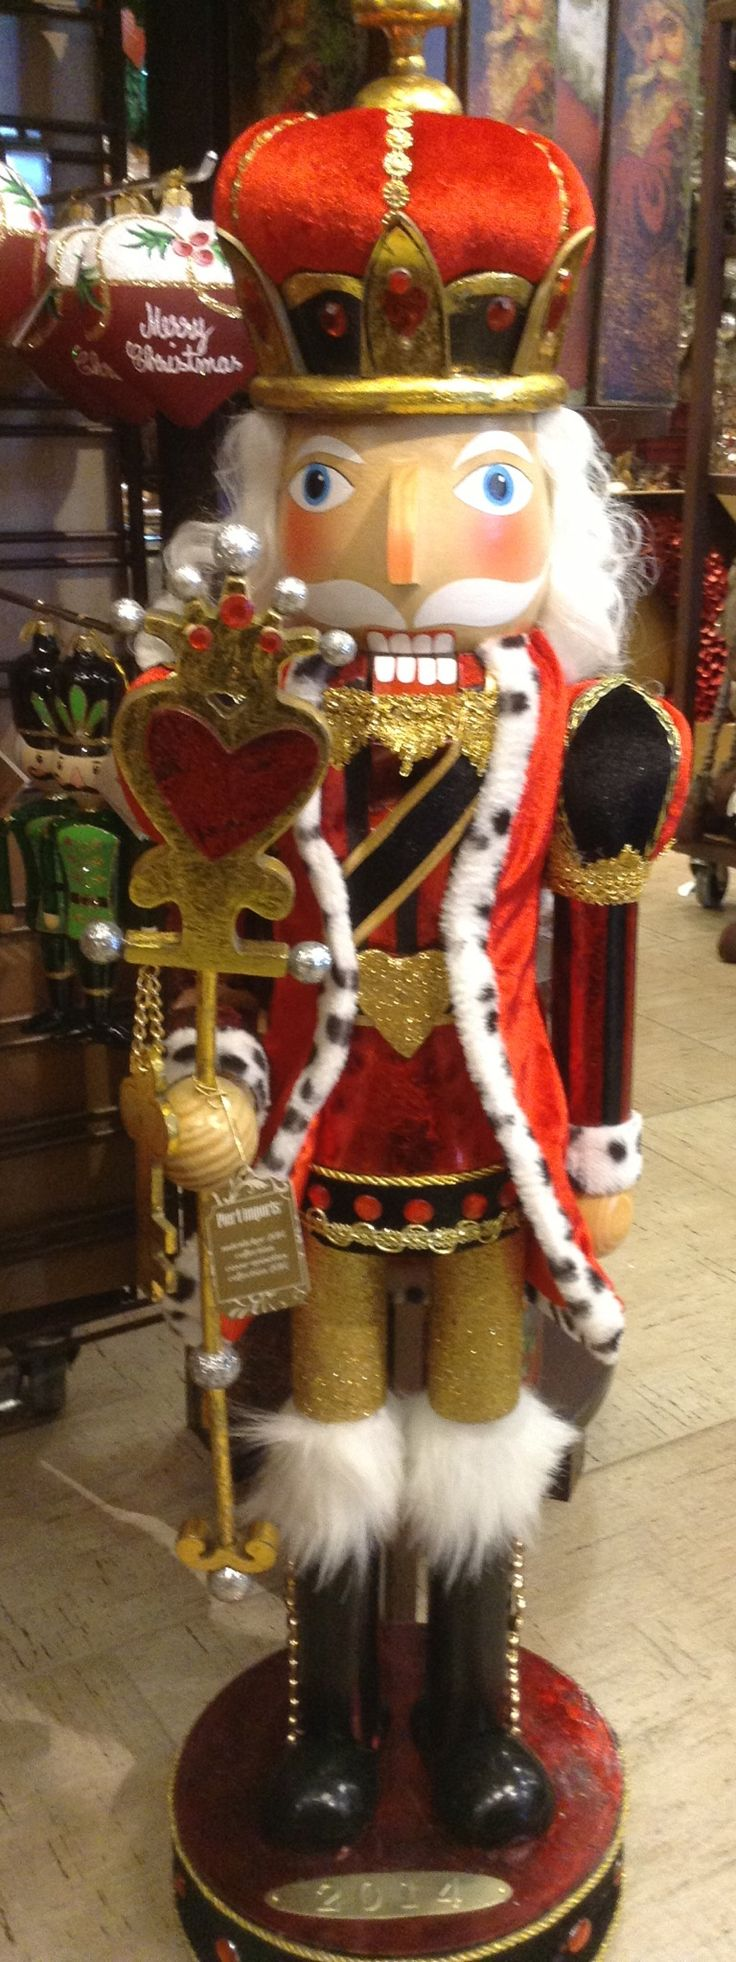 Nutcracker the king